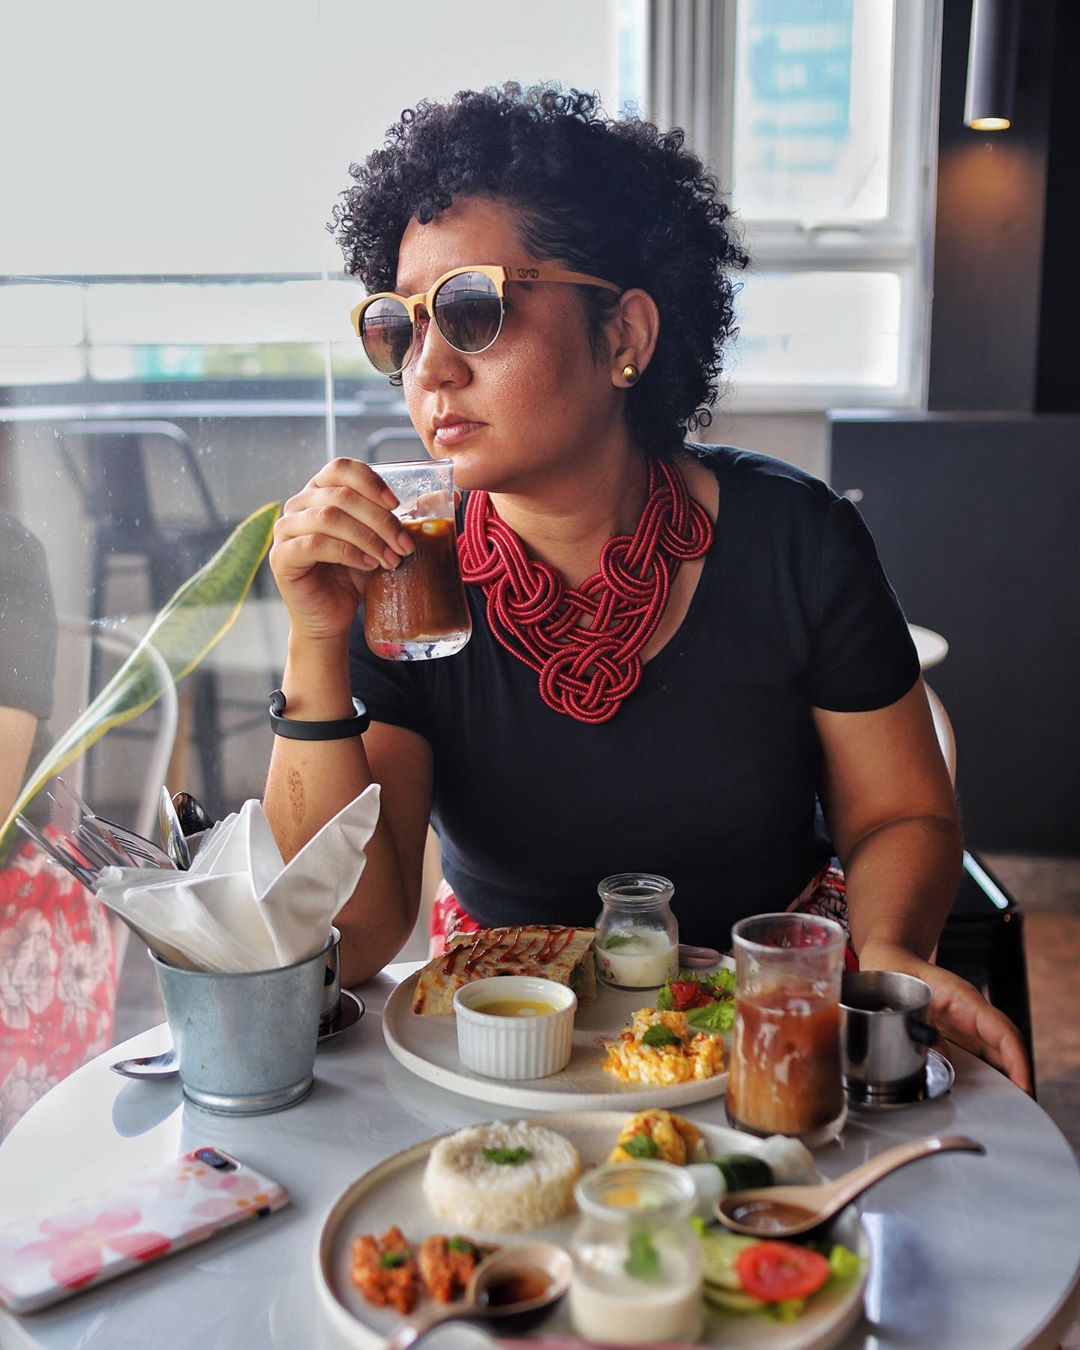 Leandré Heslop is seen in a photo posted on her travel Instagram handle @leandreh